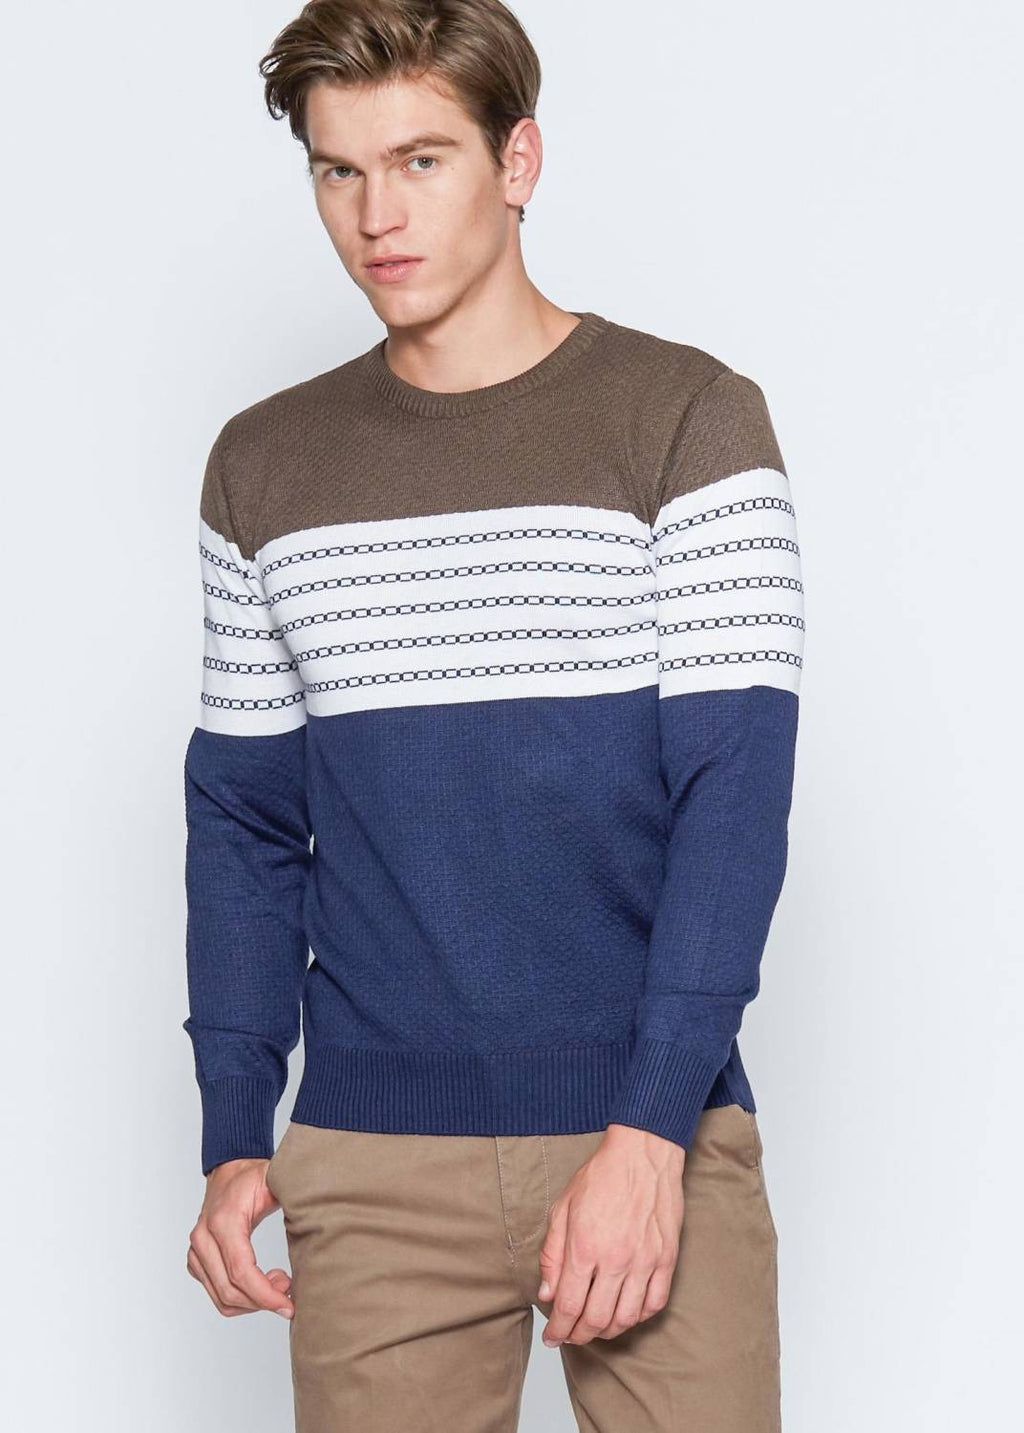 Men's Patterned Brown Tricot Pullover